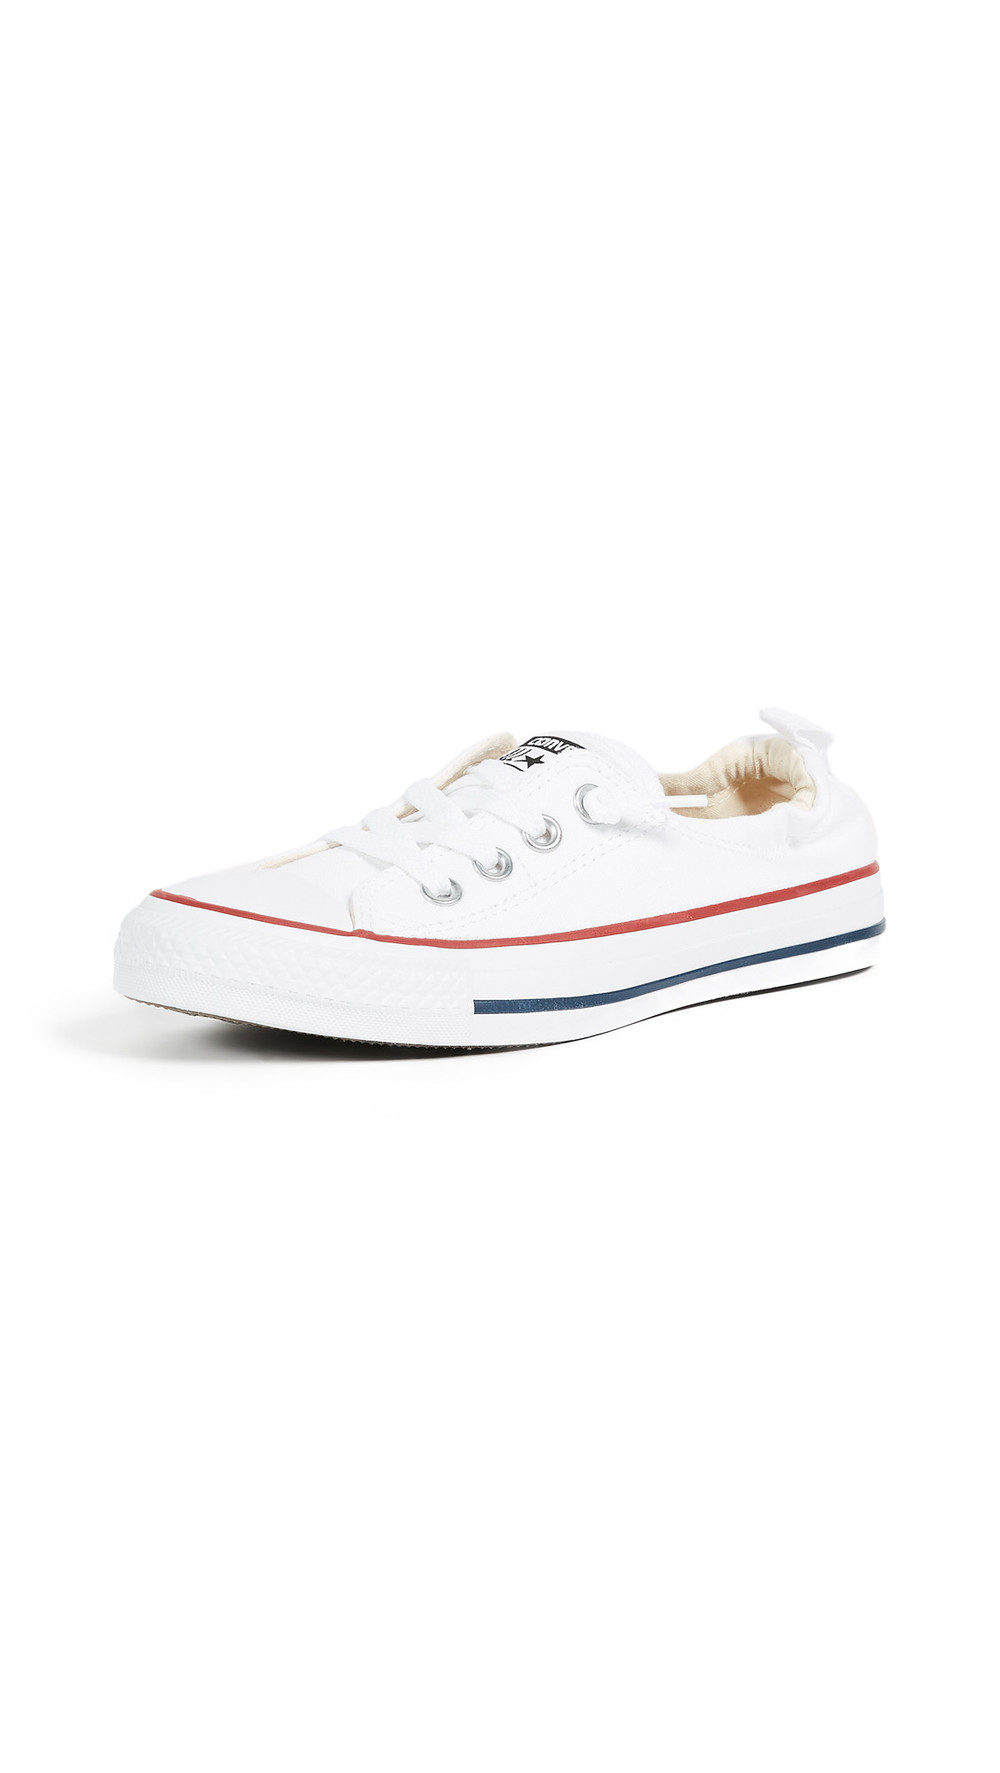 Converse Chuck Taylor All Star Shoreline Slip On Sneakers in white